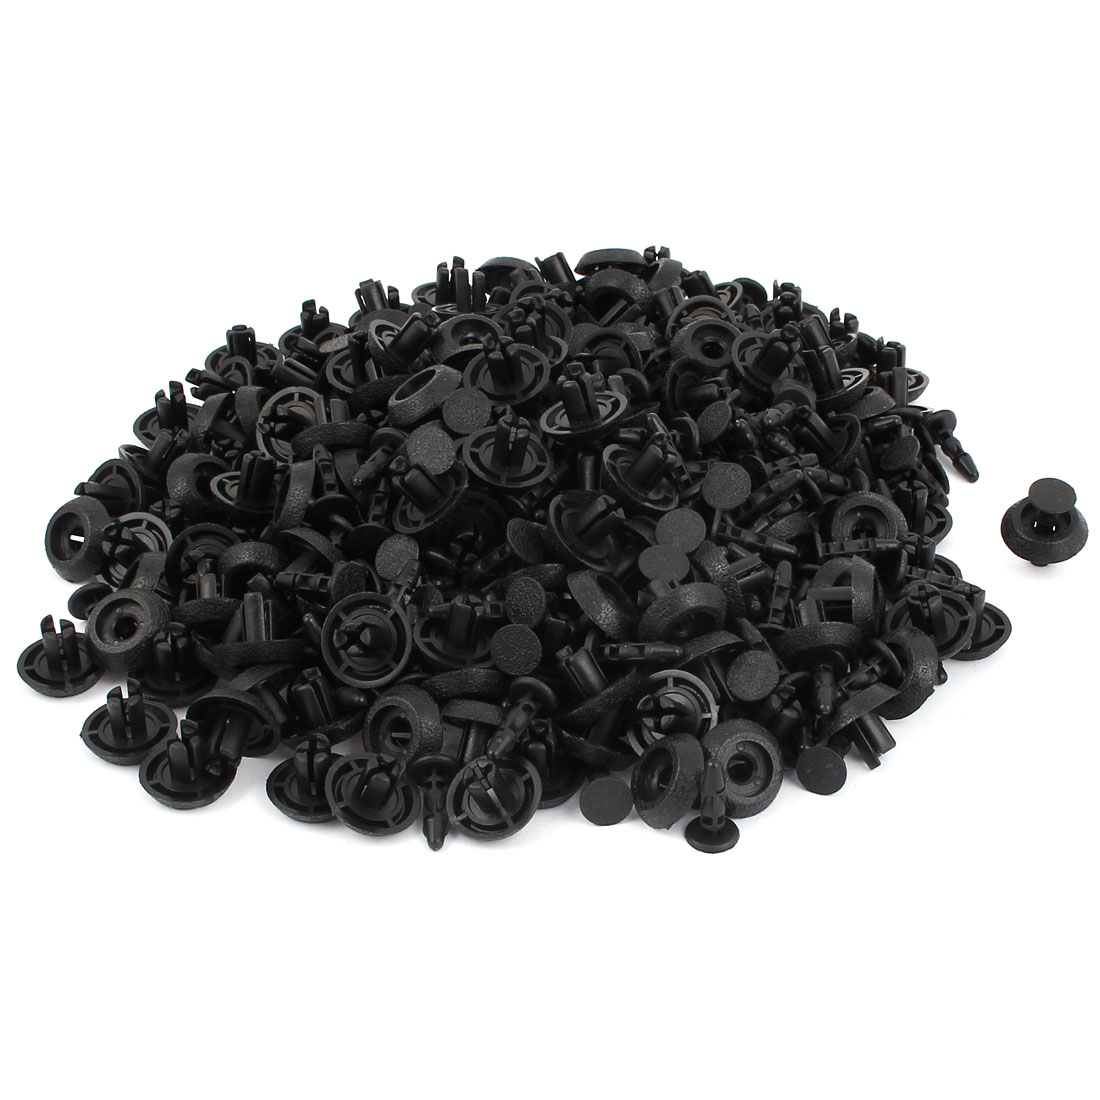 200pcs 7mm Dia Hole 18mm Head Black Plastic Rivets Fastener Fender Car Bumper Push Clips